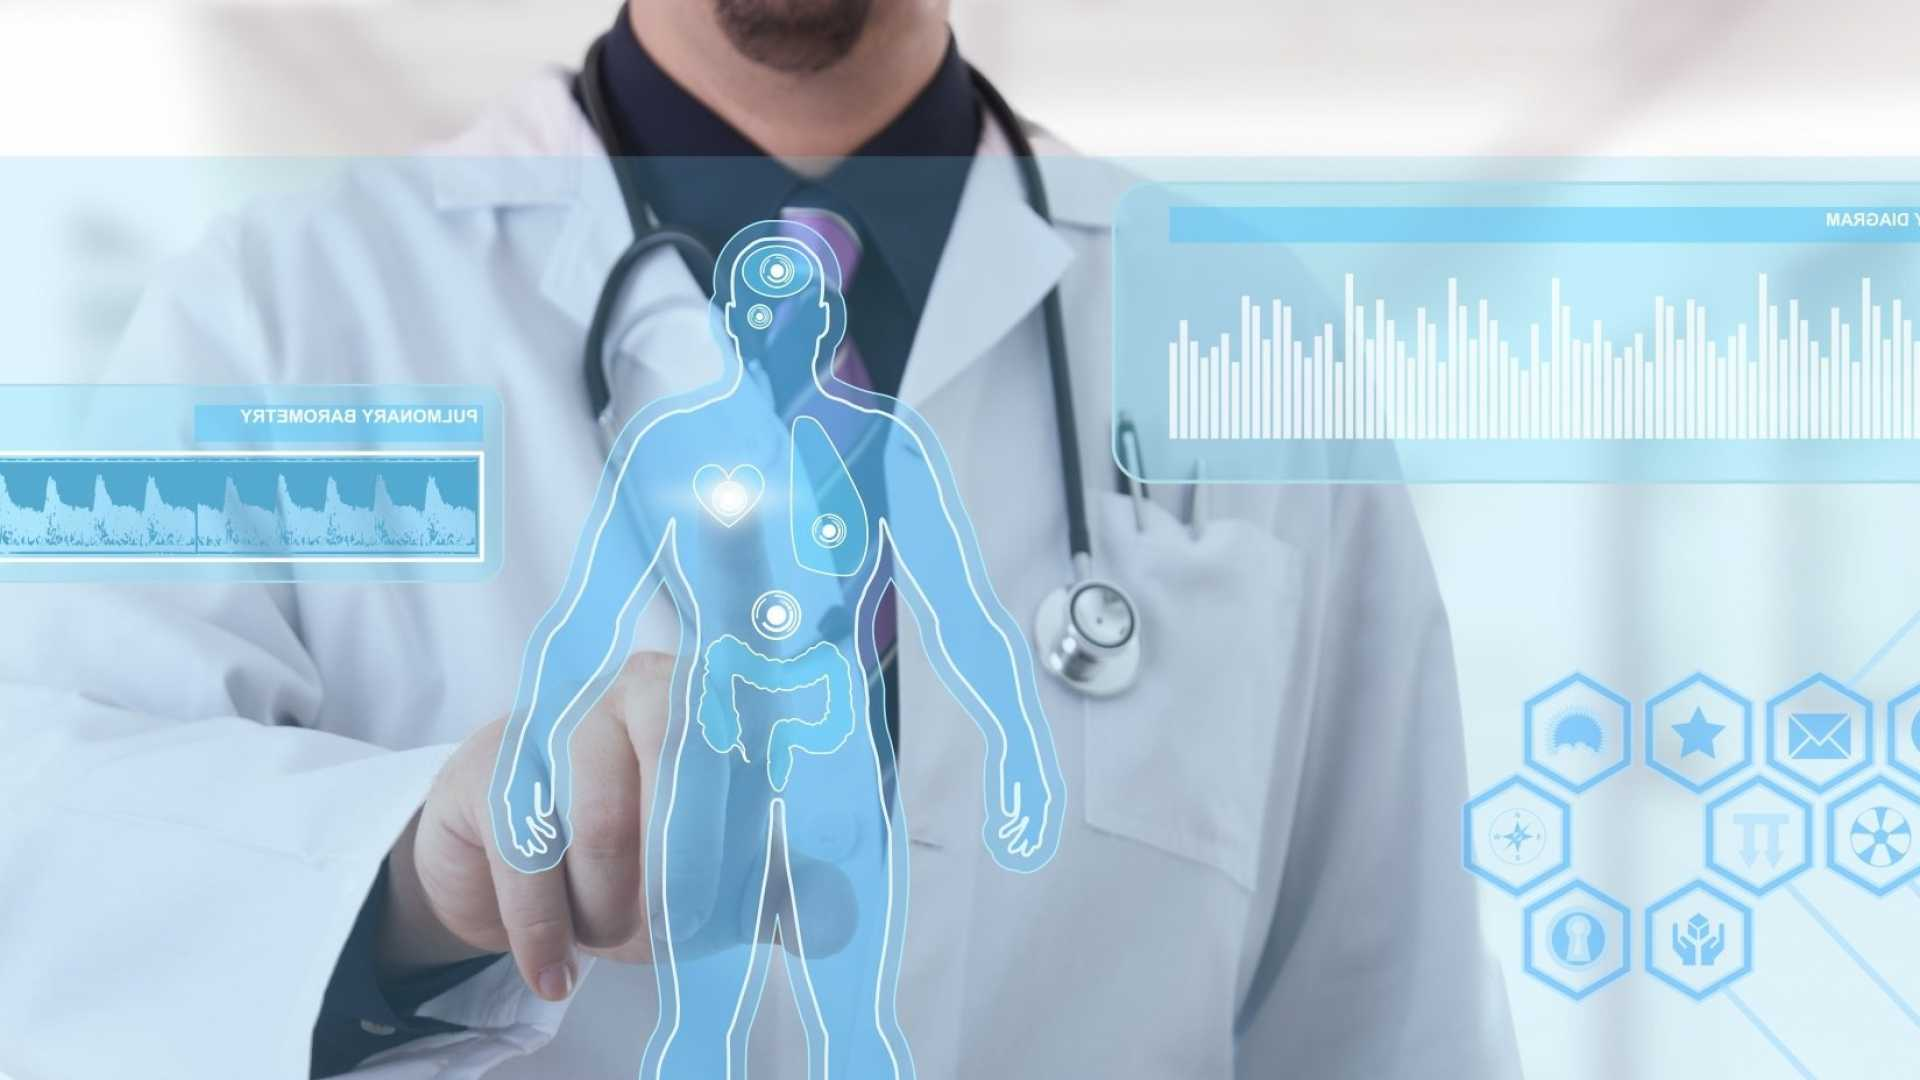 3 Robotic Innovations in Healthcare